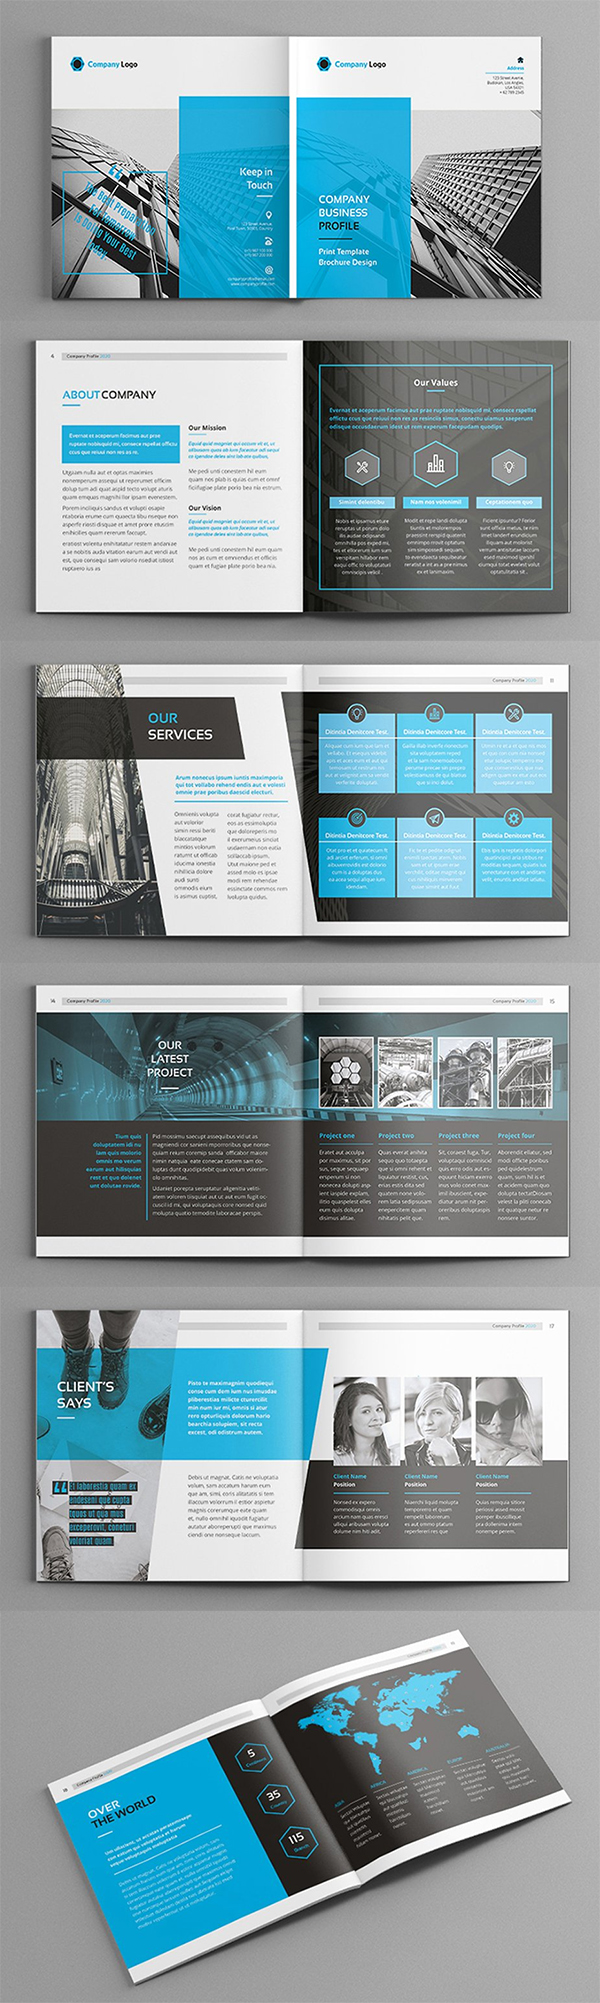 Hilih - Square Company brochure template